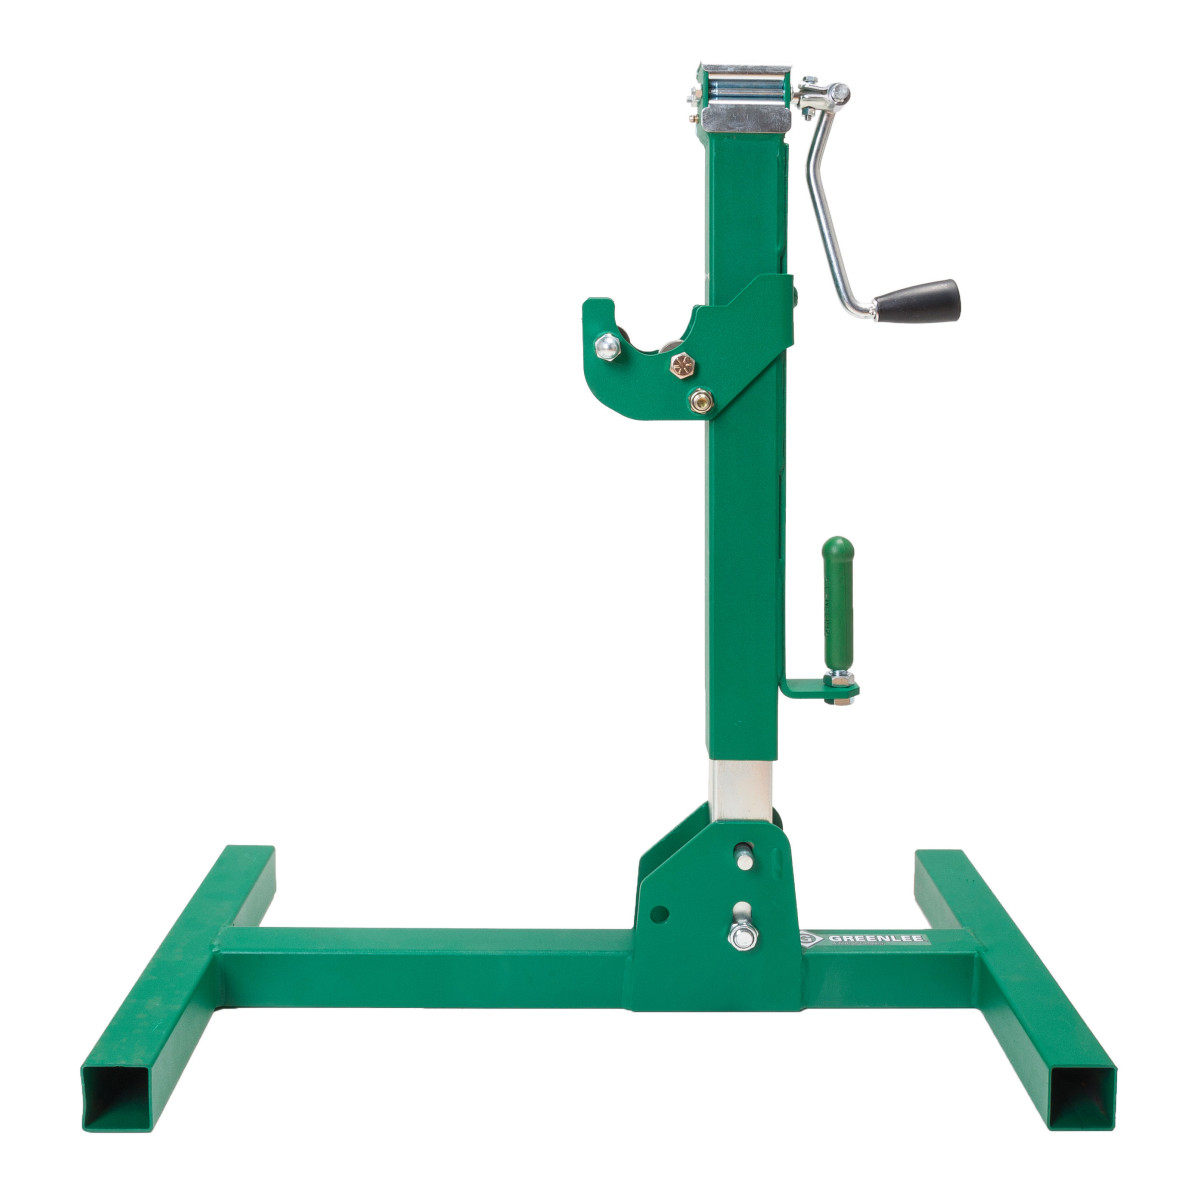 RXM GREENLEE REEL STAND 78331005711